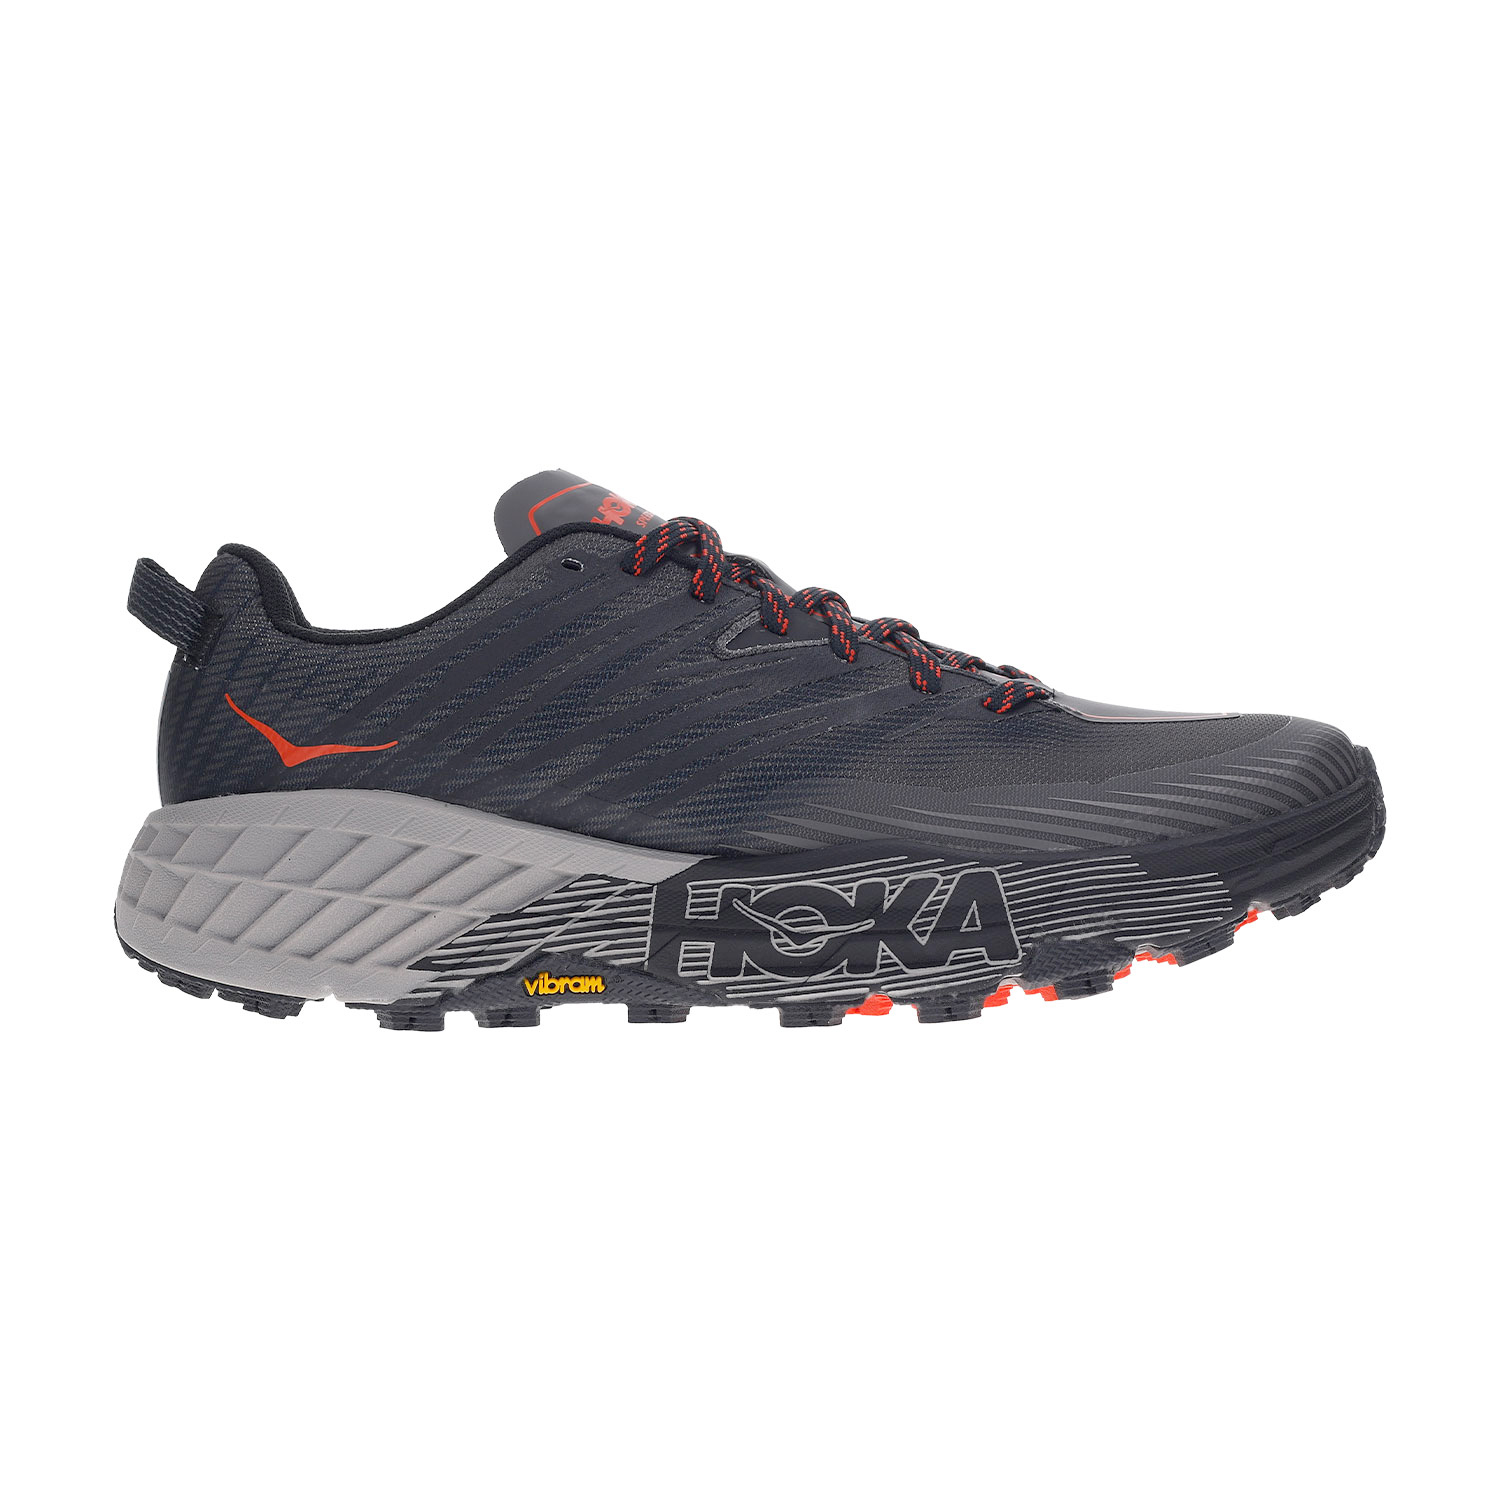 Hoka One One Speedgoat 4 - Dark Gull/Grey Antracite